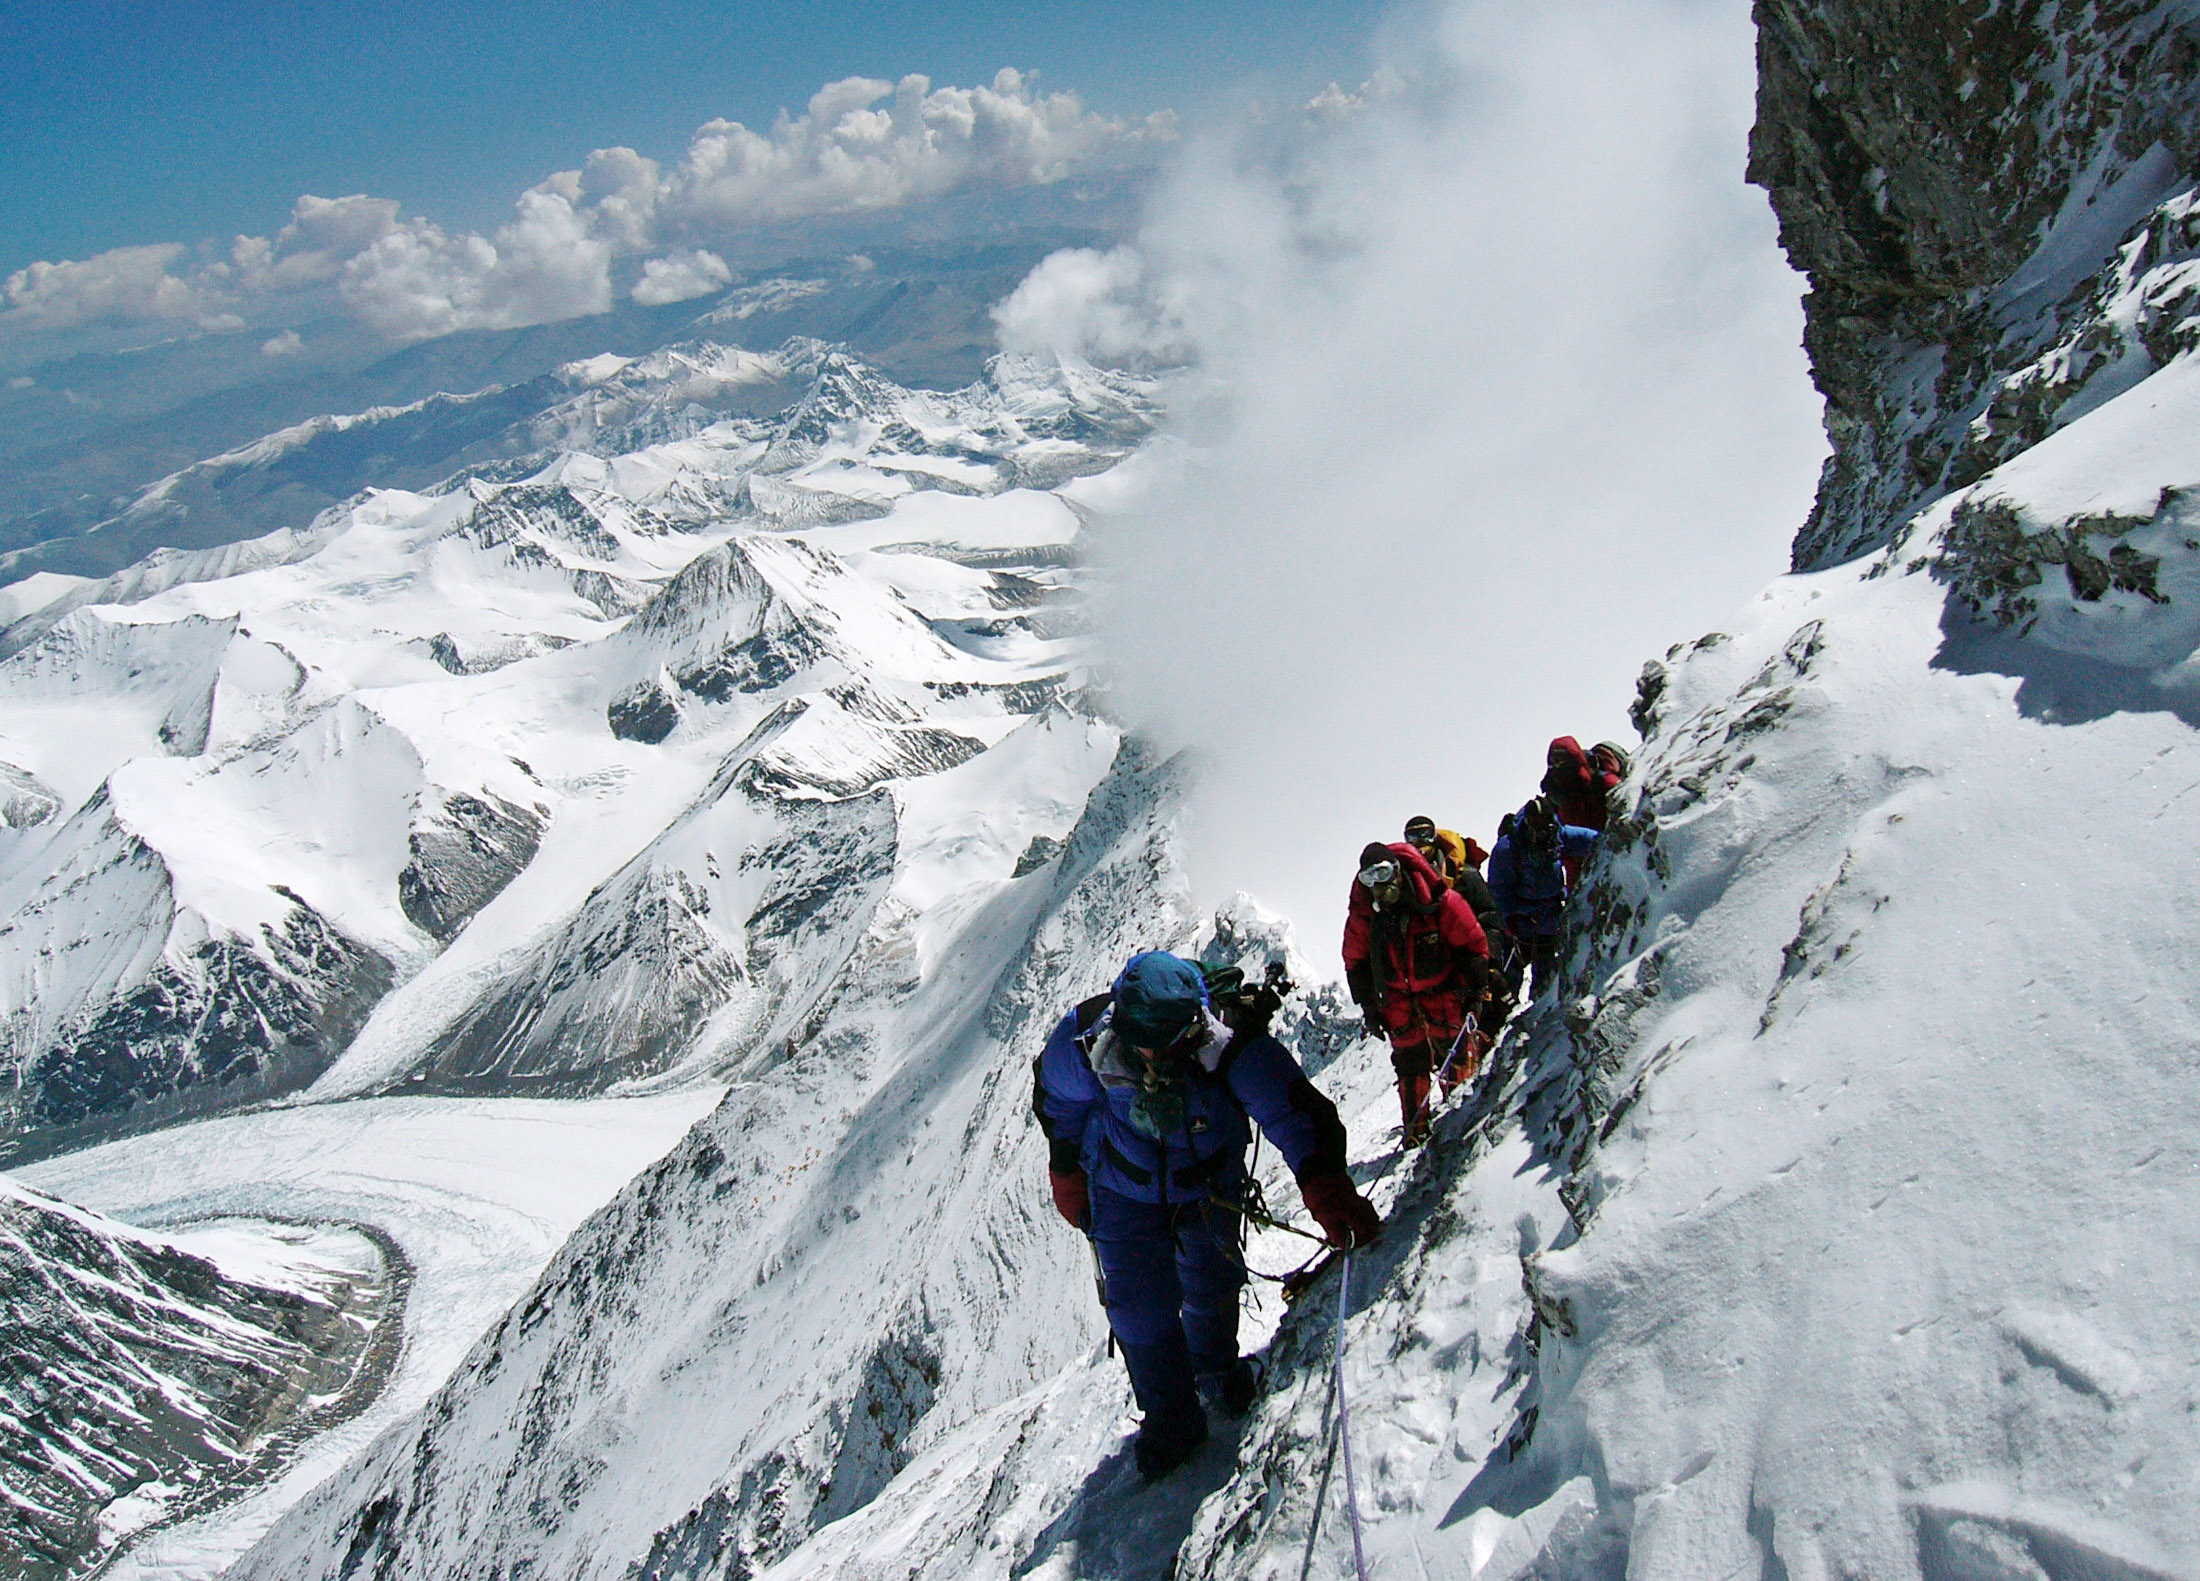 Japanese mountaineer Takako Arayama, 70, leads other climbers on the way to the top of Mount Everest May 17, 2006. Arayama is the oldest person to scale the world's highest peak from the Tibetan side. Picture taken May 17, 2006.  REUTERS/Stringer - RTR1DNND